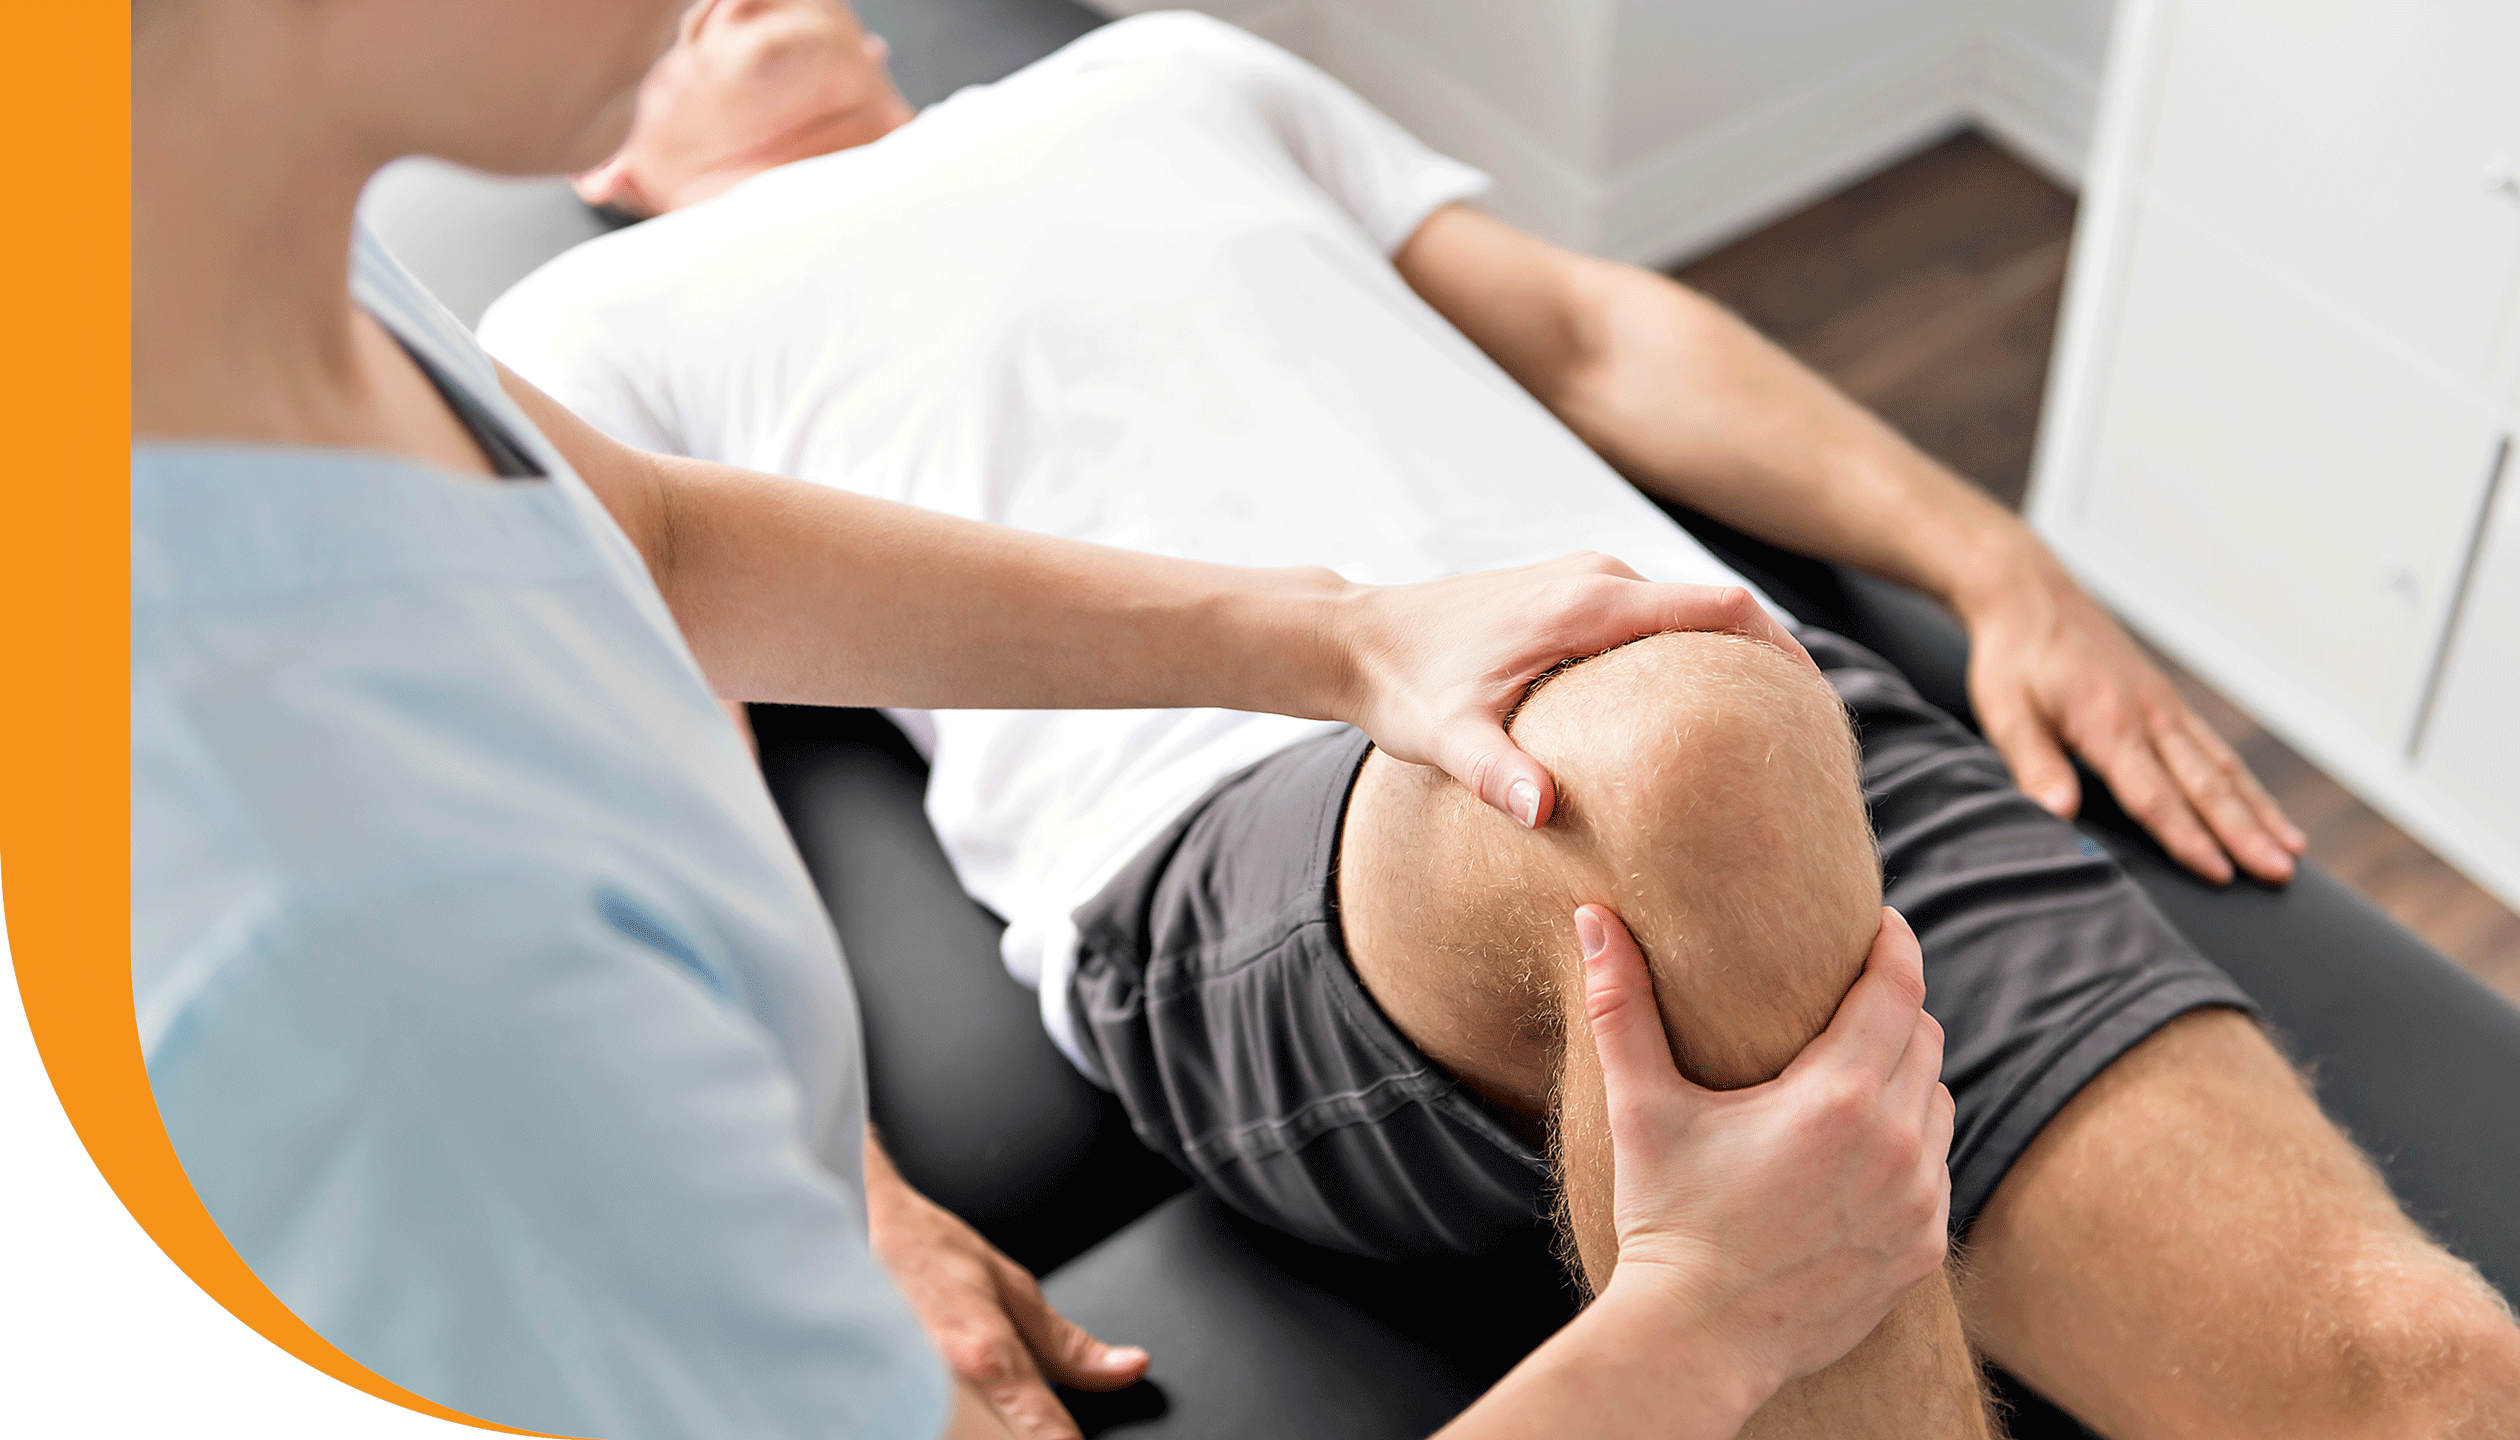 A patient with a sports injury receives knee physiotherapy.